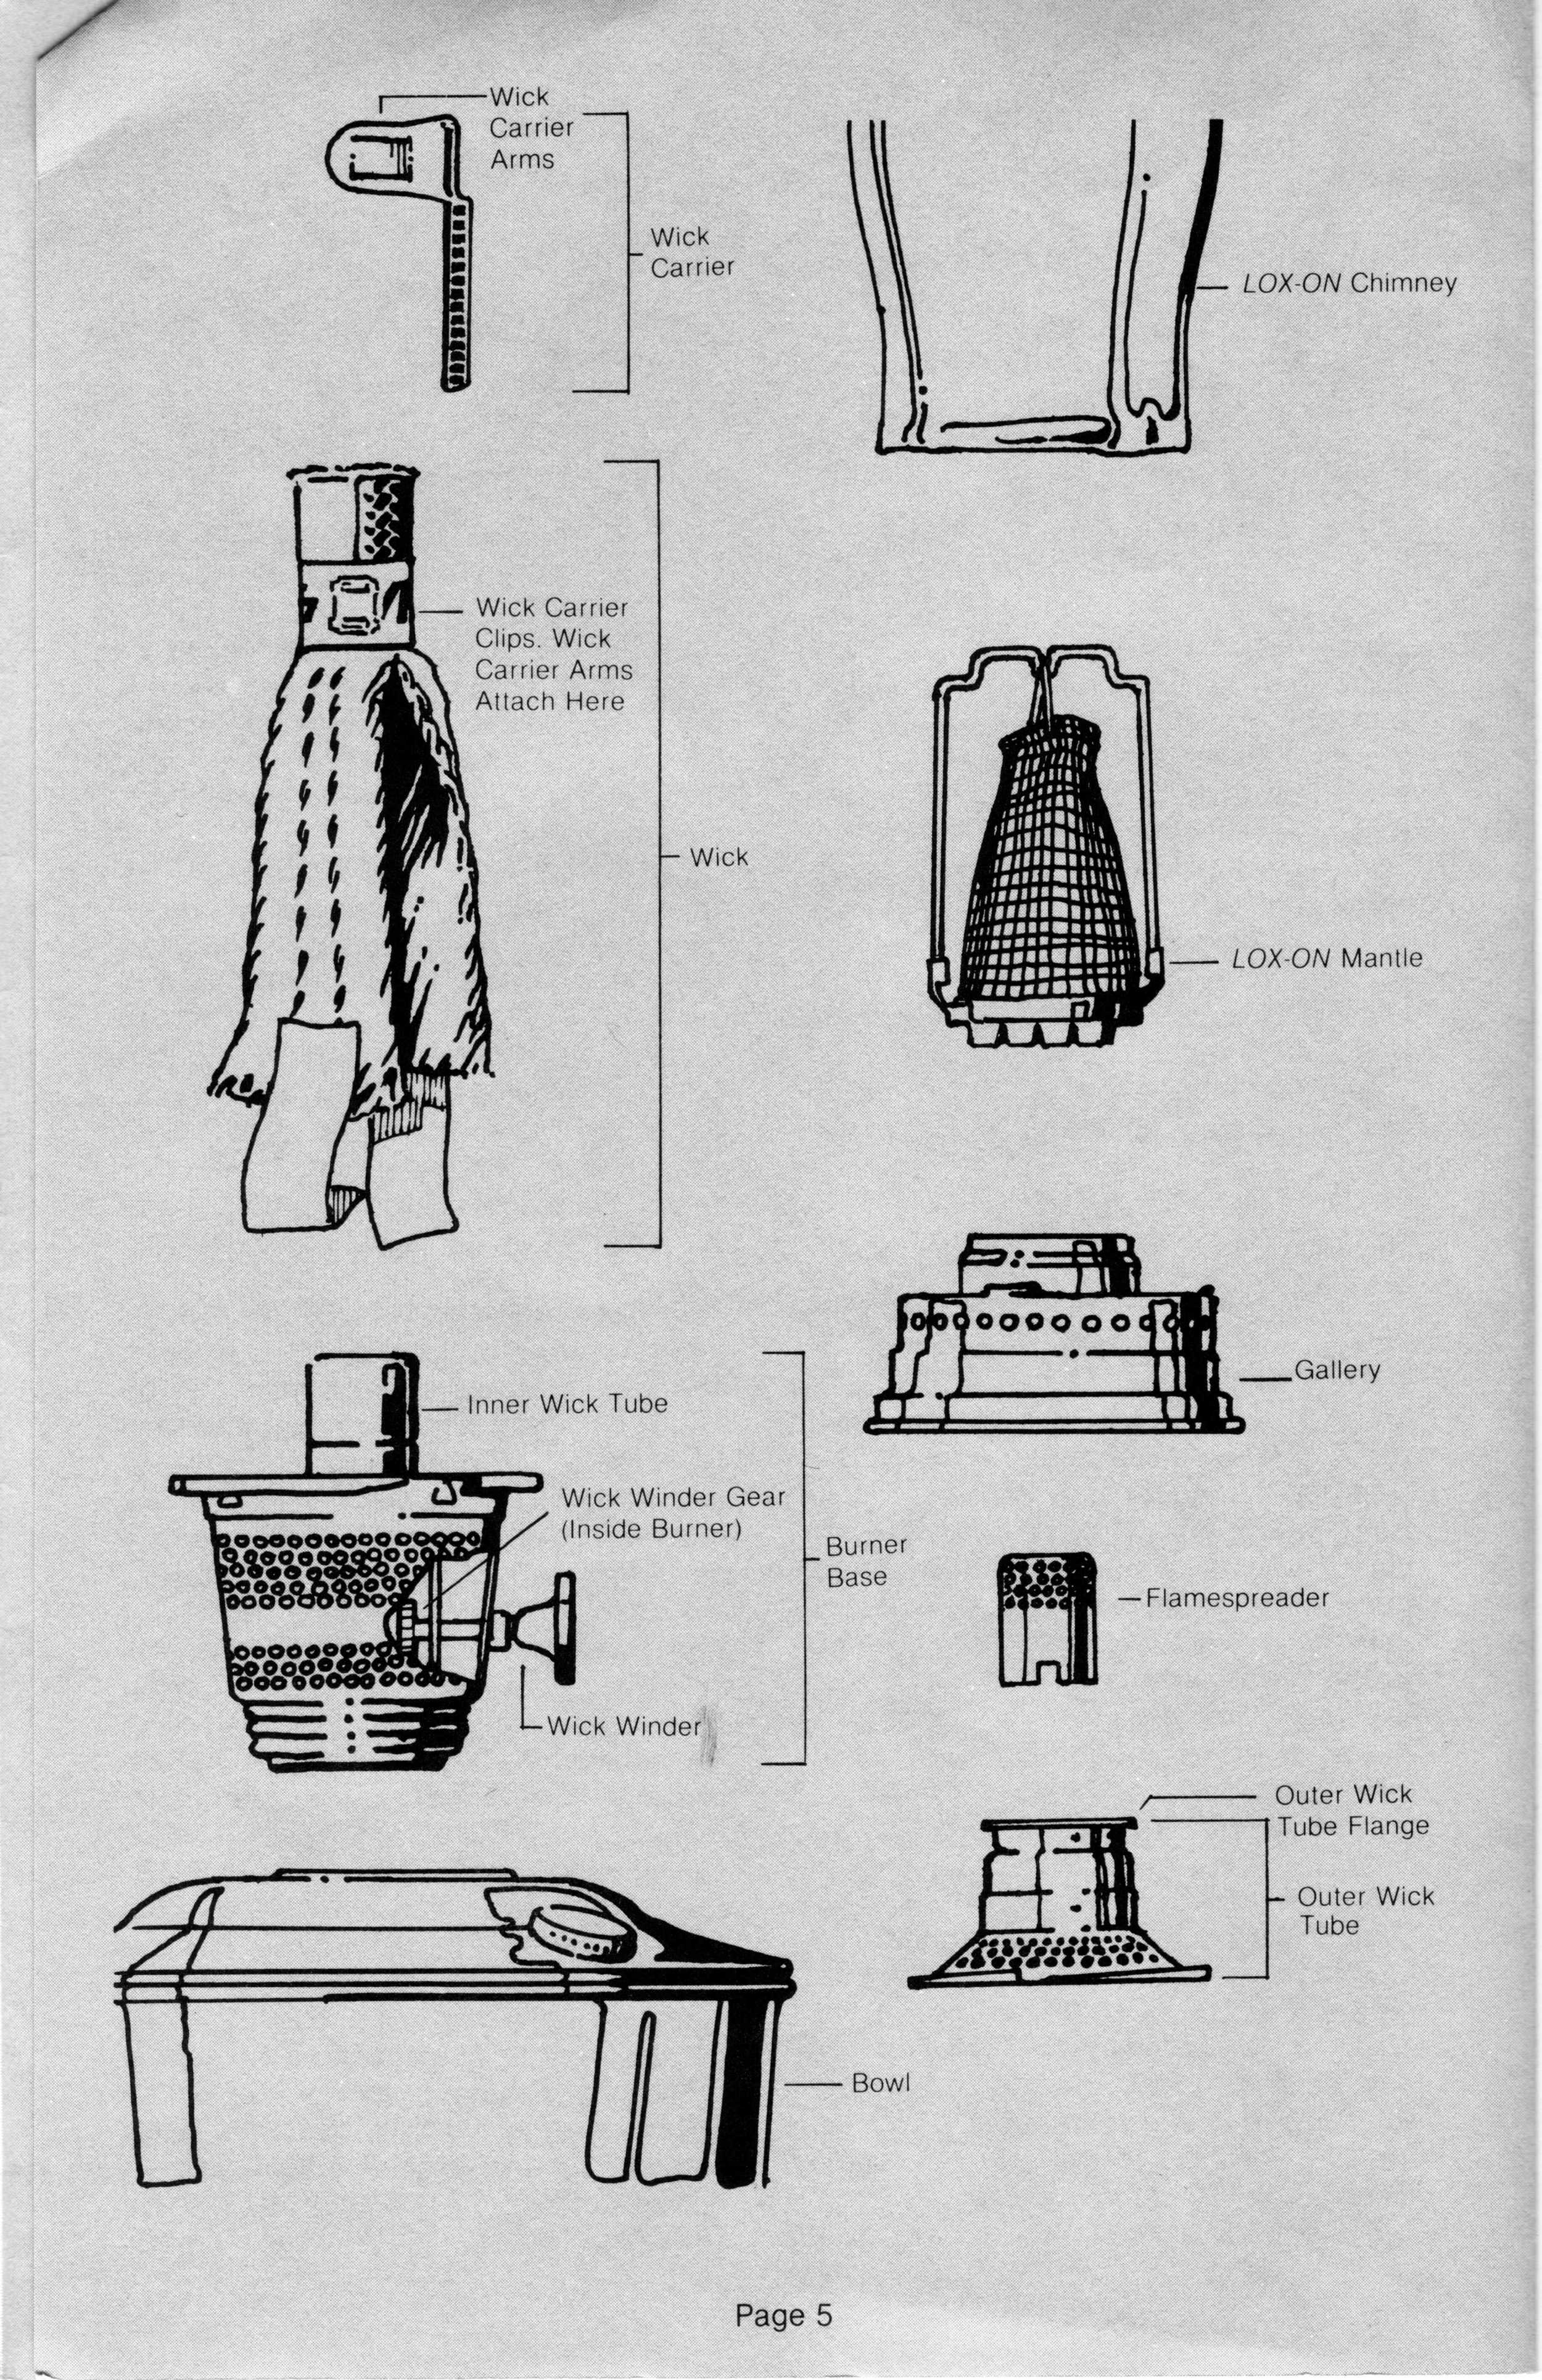 Aladdin Lamp Parts - Terminology - Pictures Specific to Model # 23